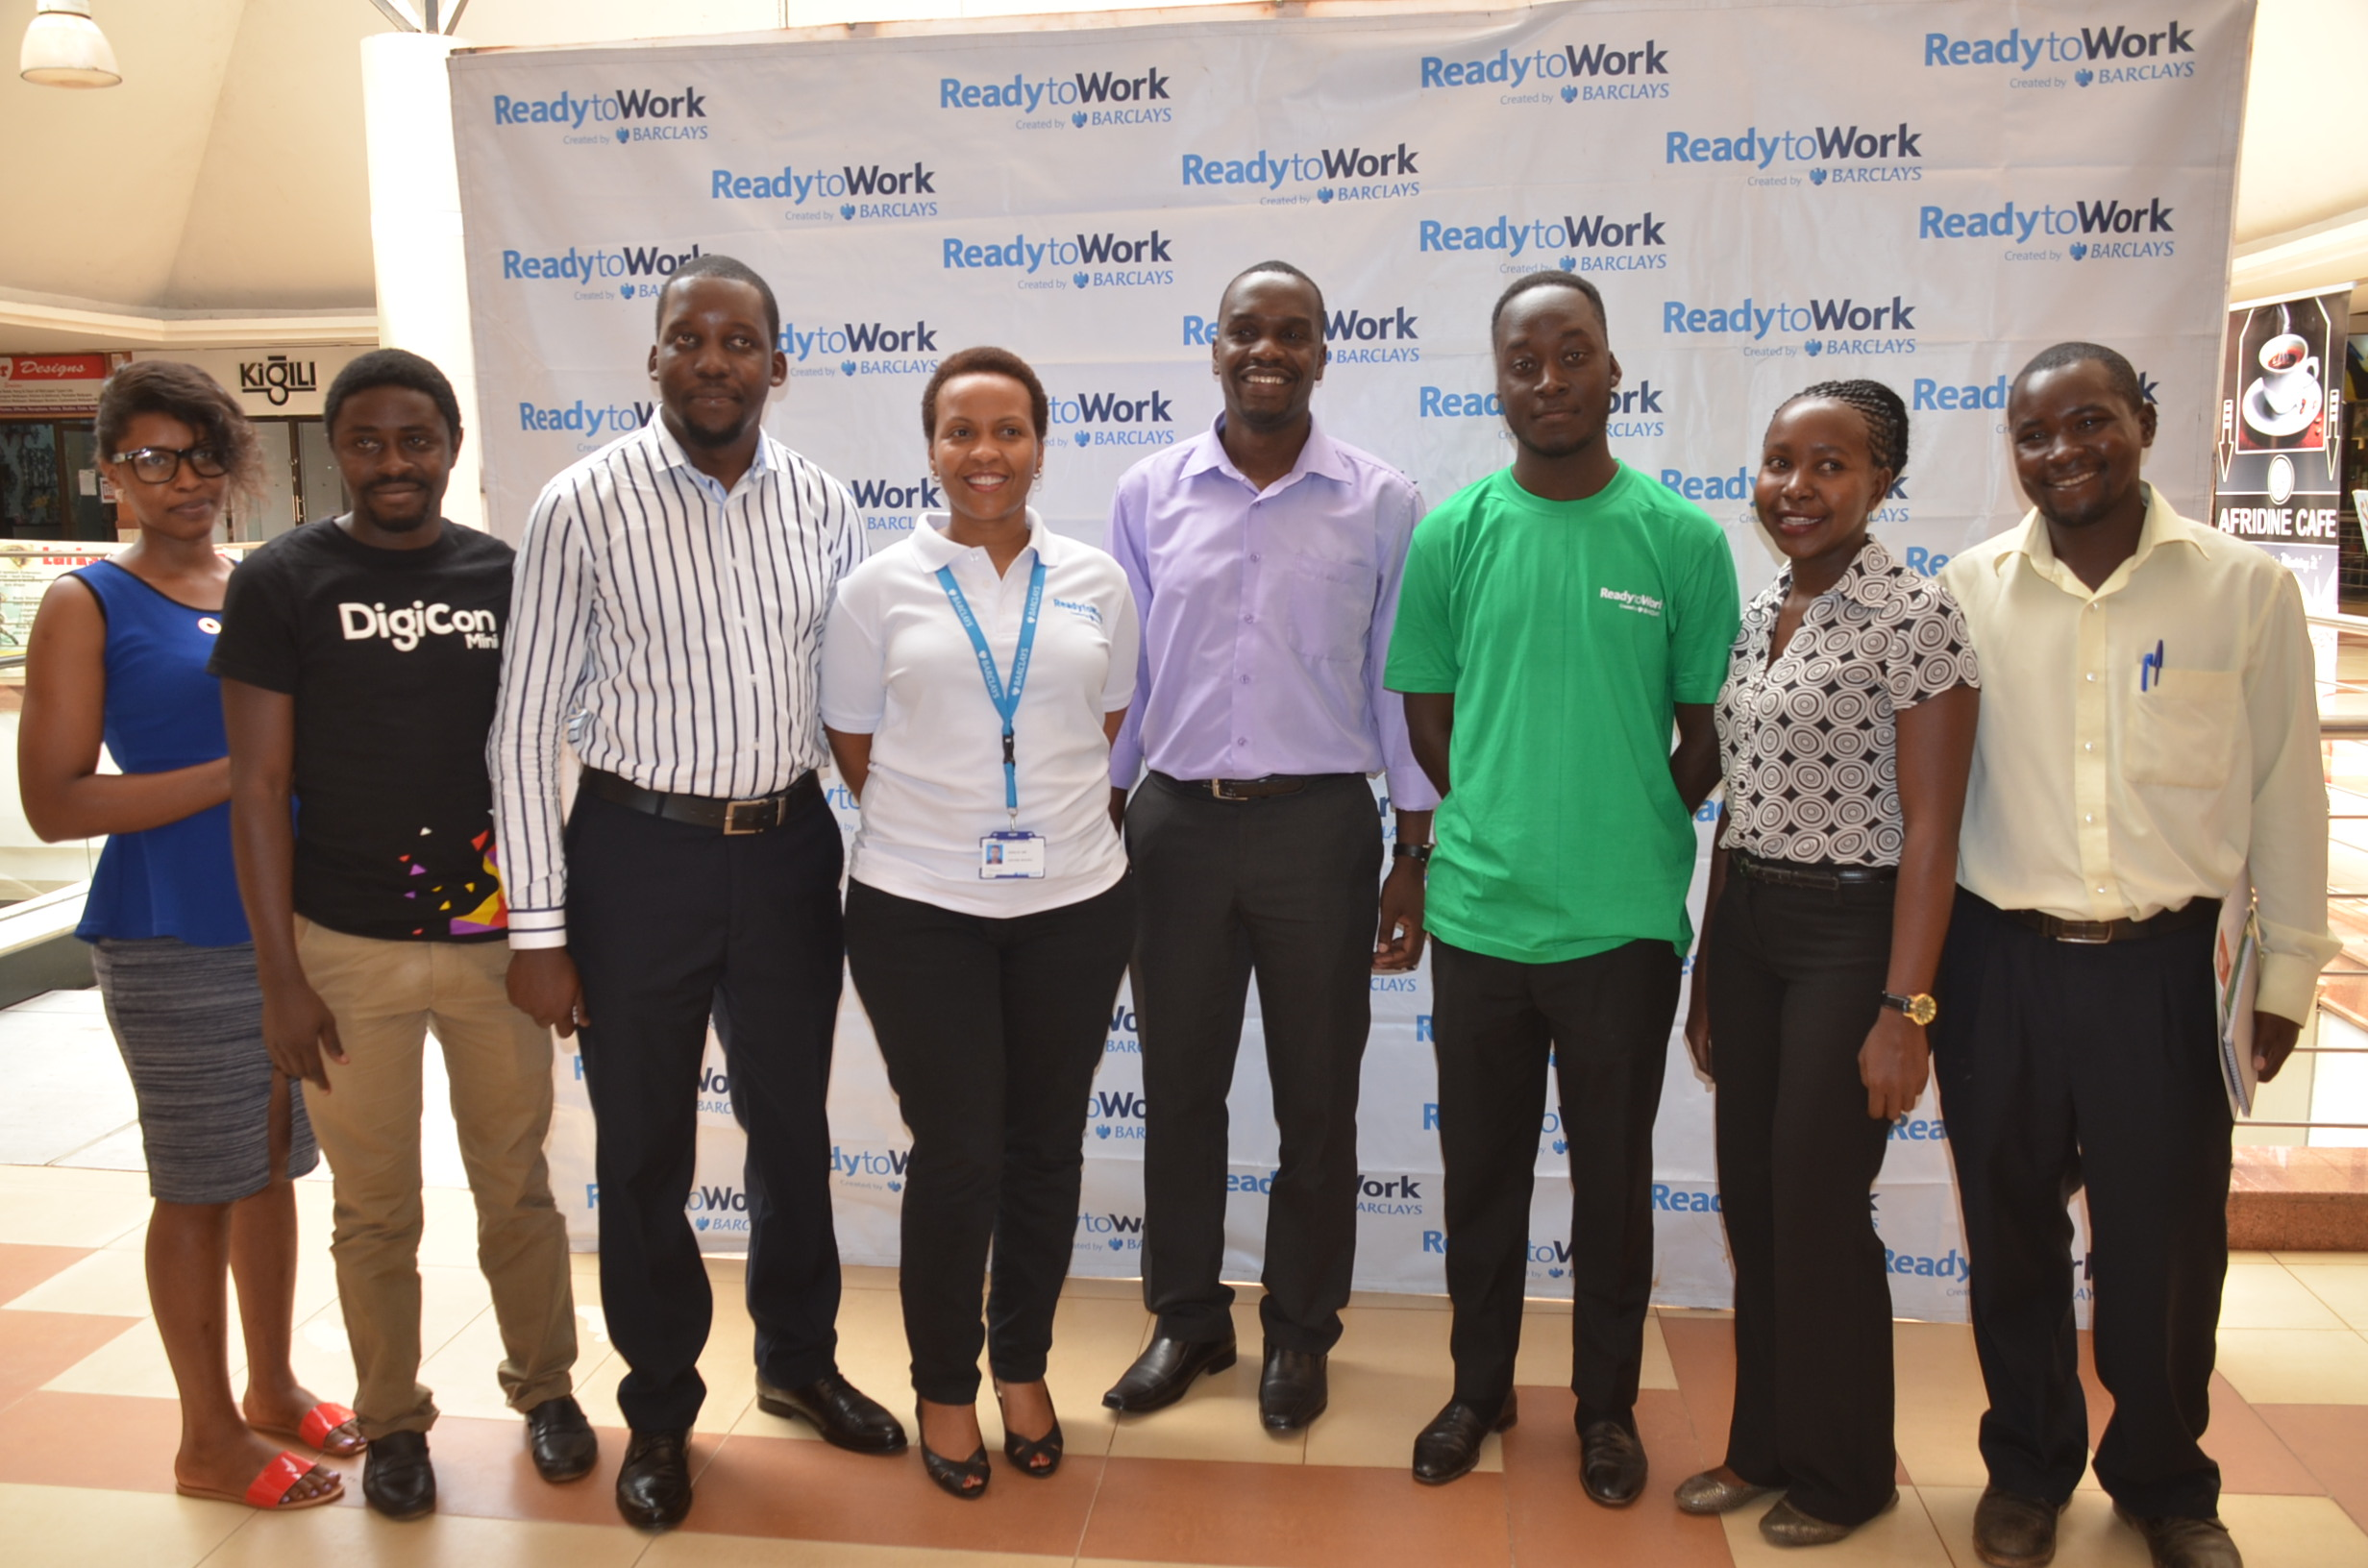 Juliana K. Lugayizi, Citizenship Manager, Marketing and Corporate Relations, Barclays Uganda (4L) pose for a photo with the ReadytoWork implementing partners and some of the beneficiaries during the ReadytoWork face-to-face free training that commenced yesterday December 5, 2016 at the Hub, Oasis Mall.